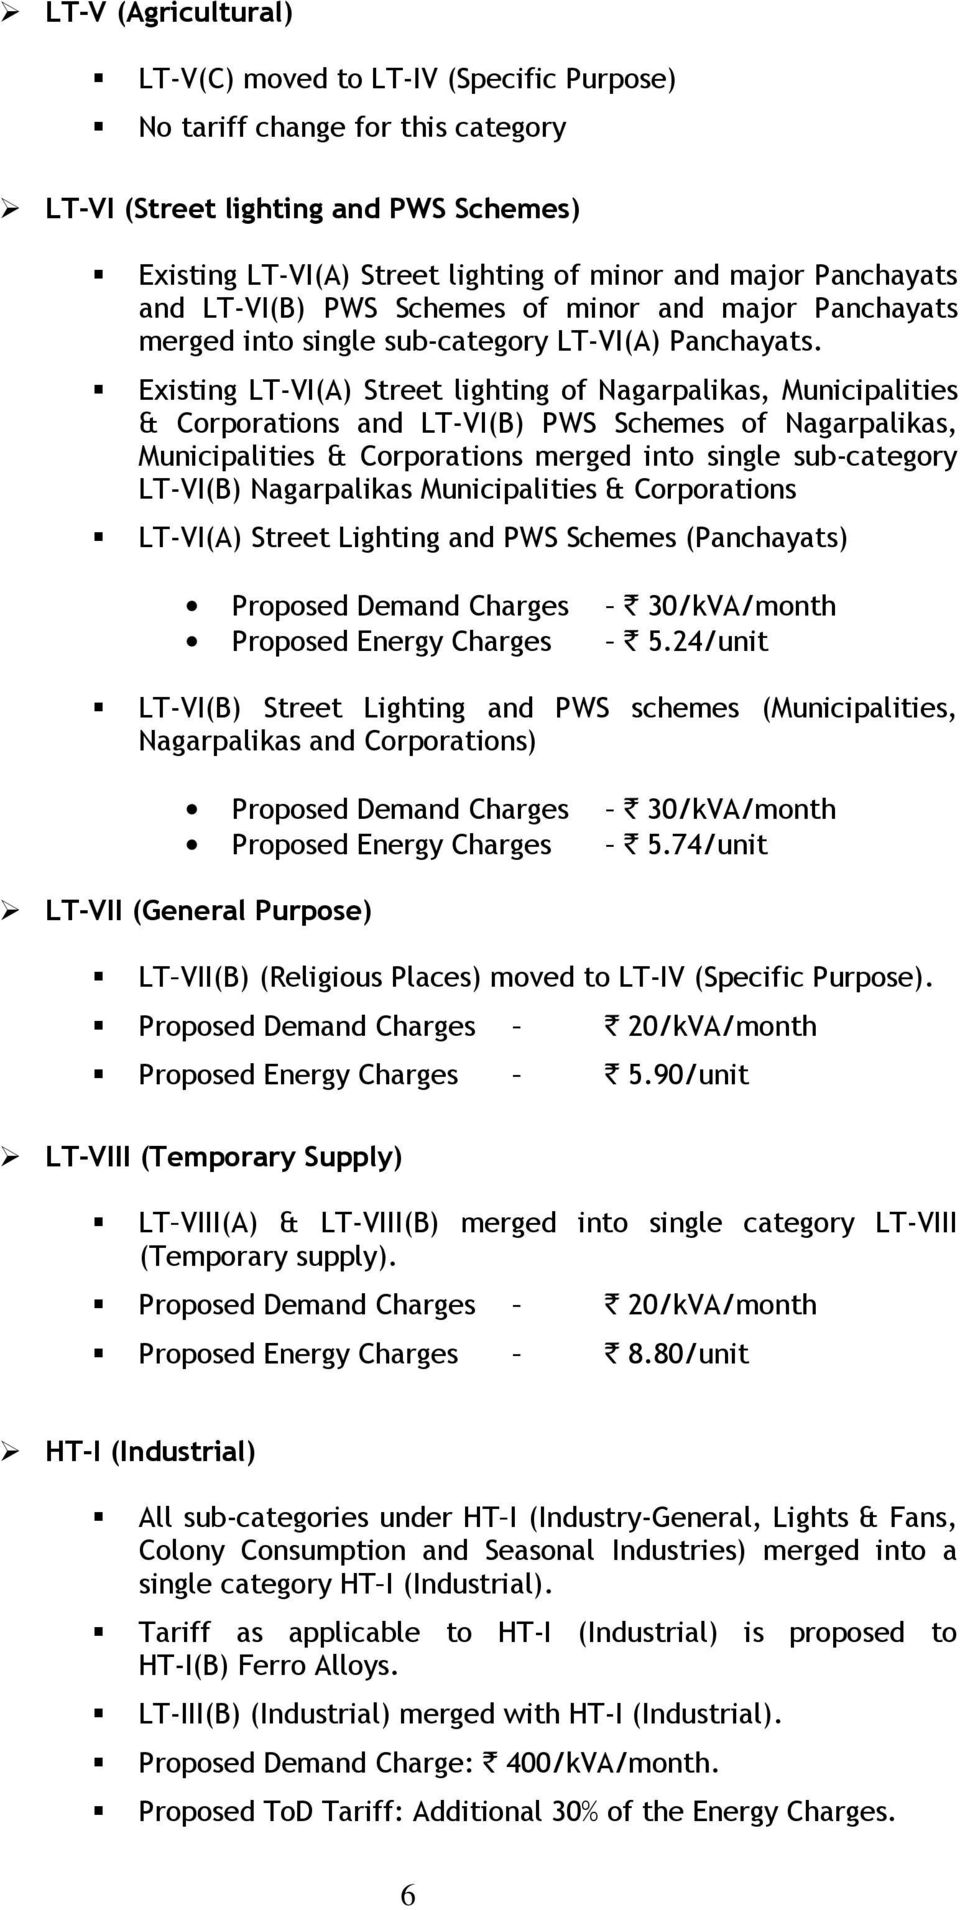 Existing LT-VI(A) Street lighting of Nagarpalikas, Municipalities & Corporations and LT-VI(B) PWS Schemes of Nagarpalikas, Municipalities & Corporations merged into single sub-category LT-VI(B)